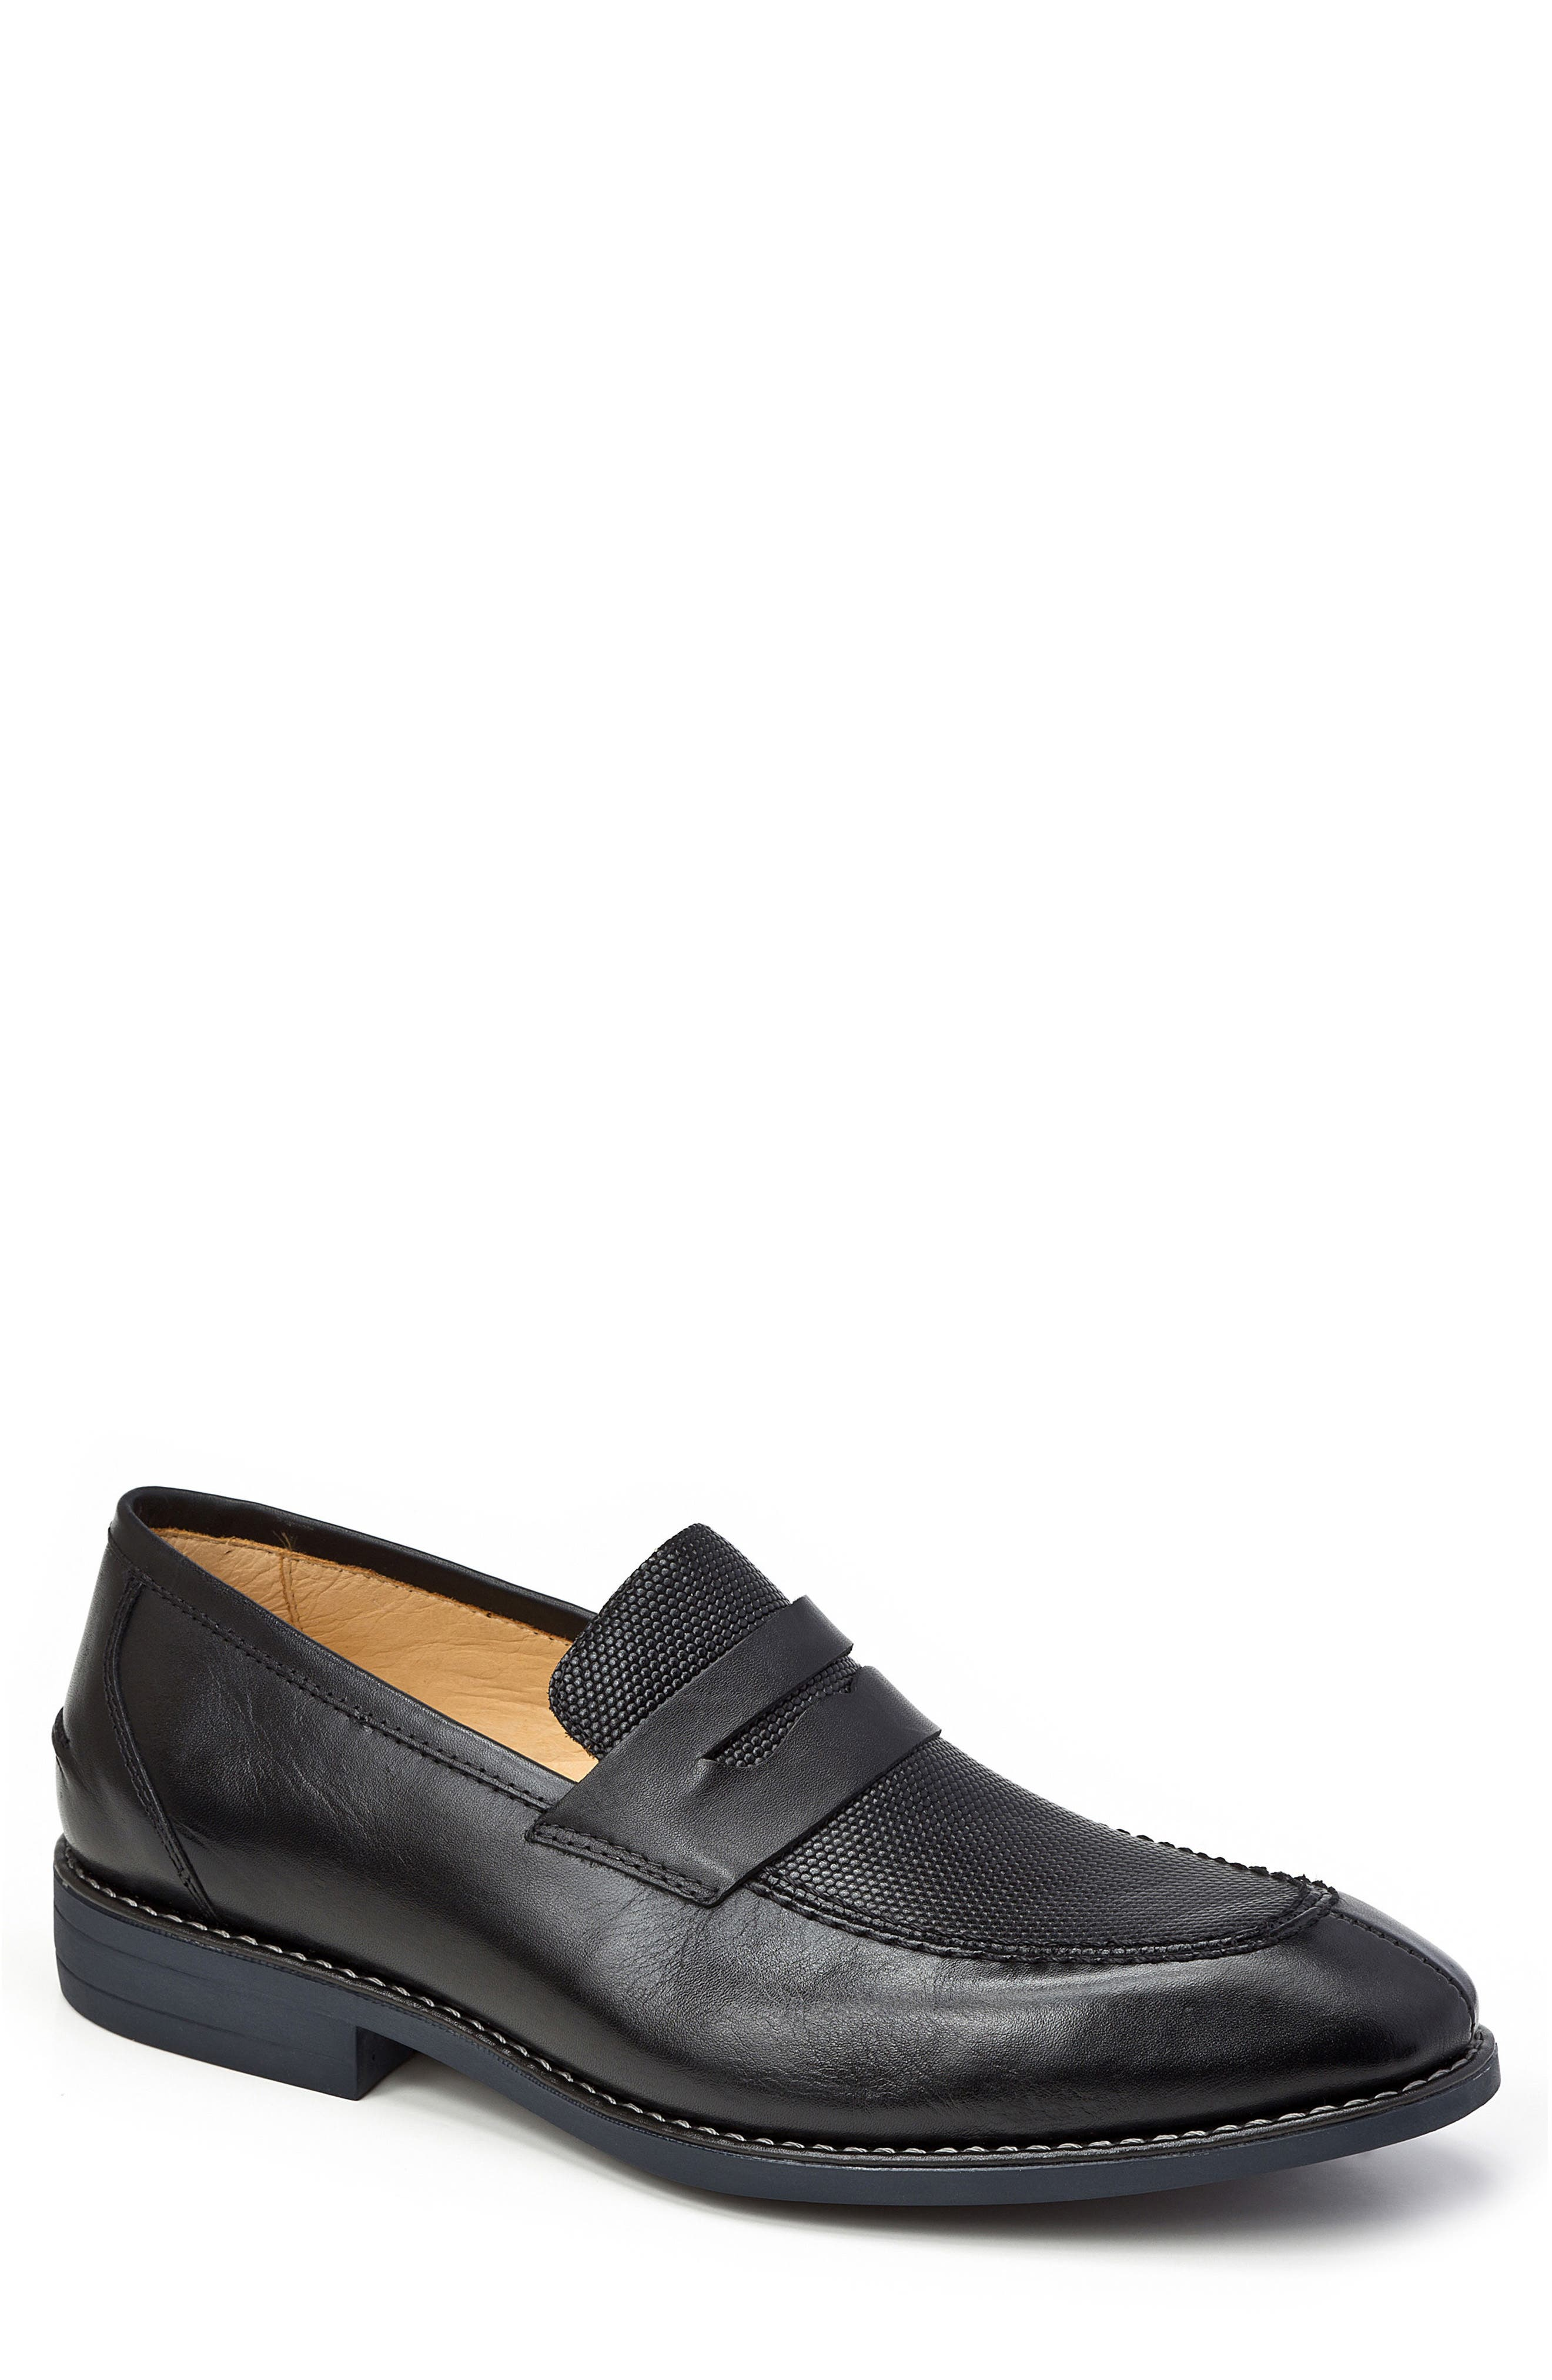 Maestro Penny Loafer,                             Main thumbnail 1, color,                             BLACK LEATHER